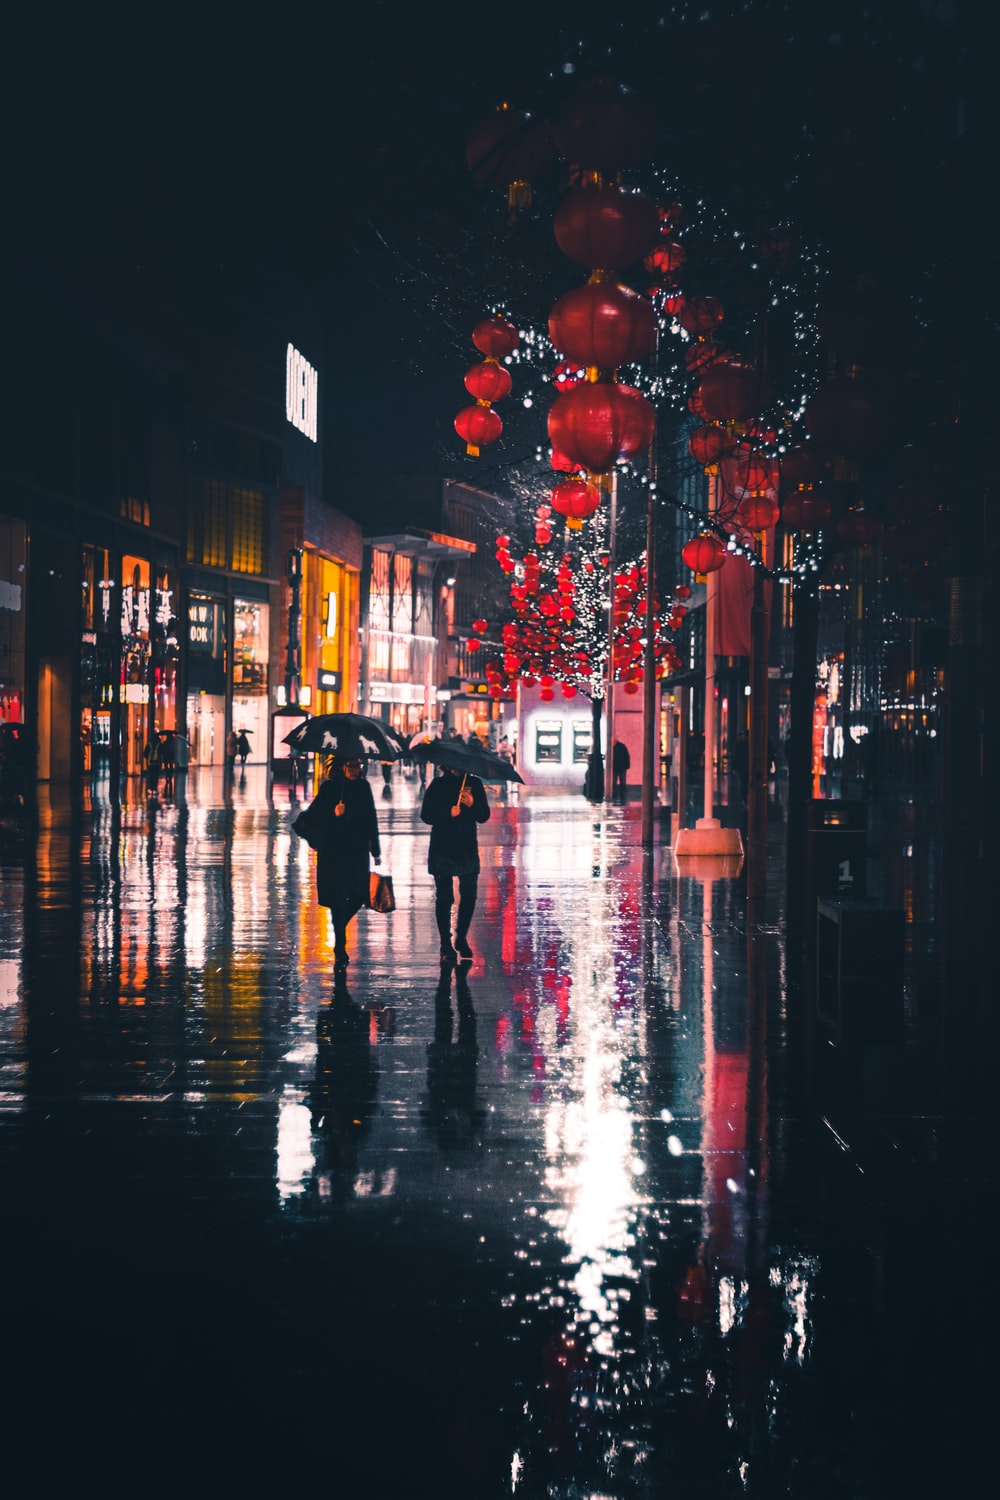 people walking holding umbrella at night